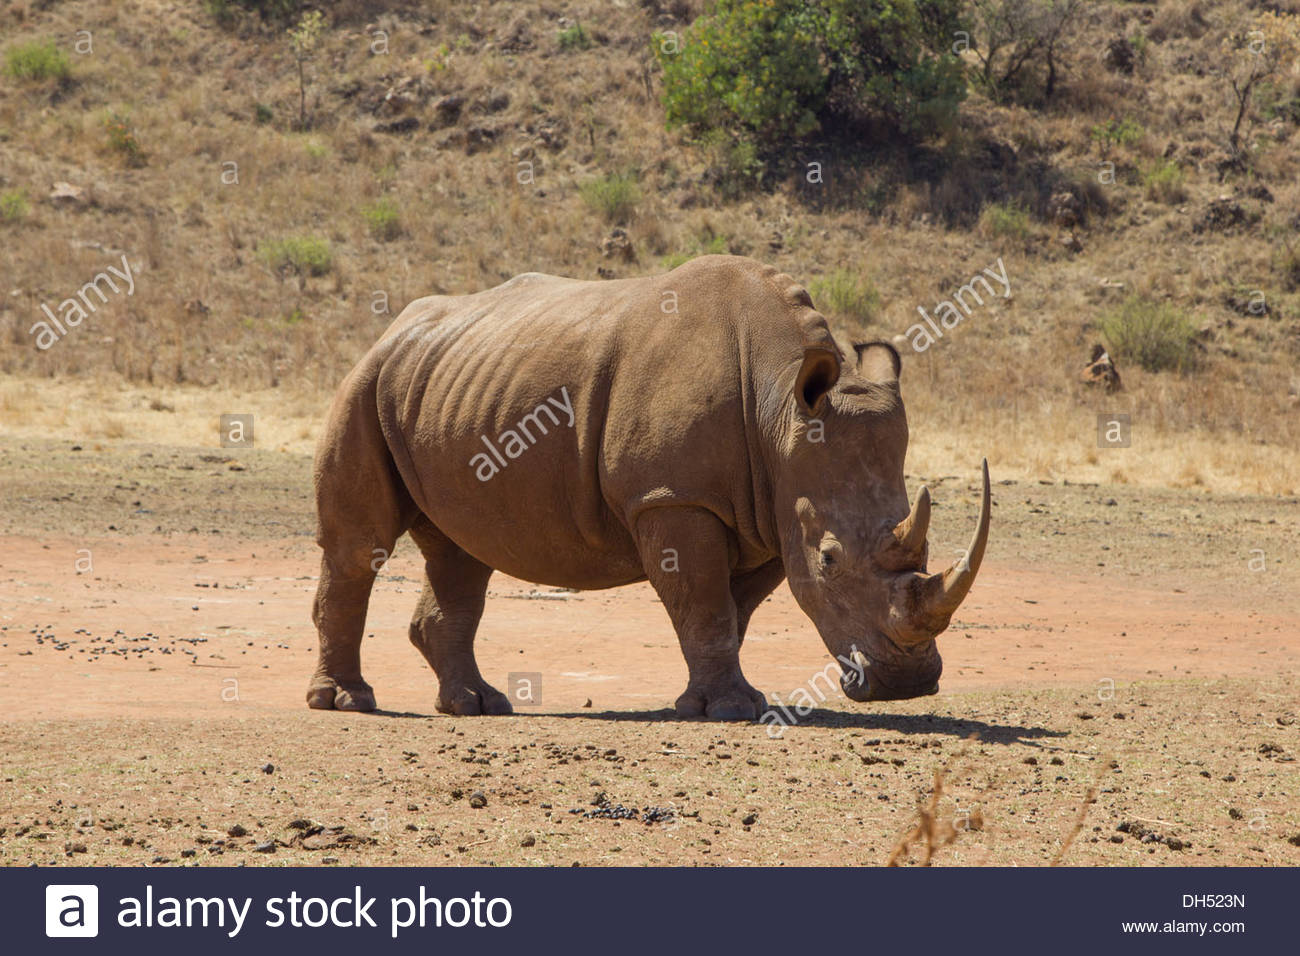 A White Rhinoceros Grazing in a Lion and Rhino Reserve in South Africa - Stock Image